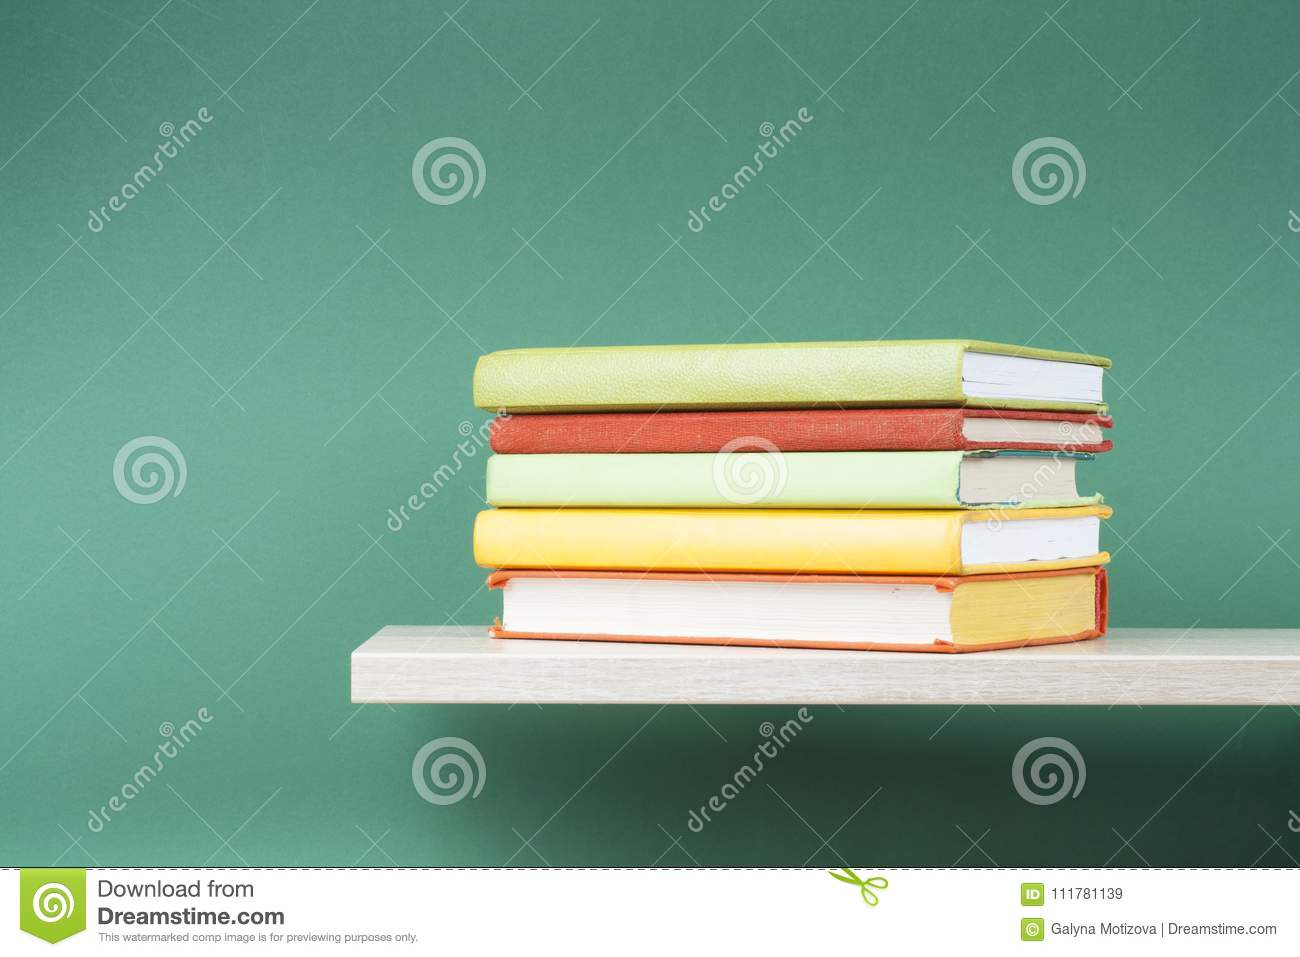 Stack of books on wooden shelf. Education background. Back to school. Copy space for text.